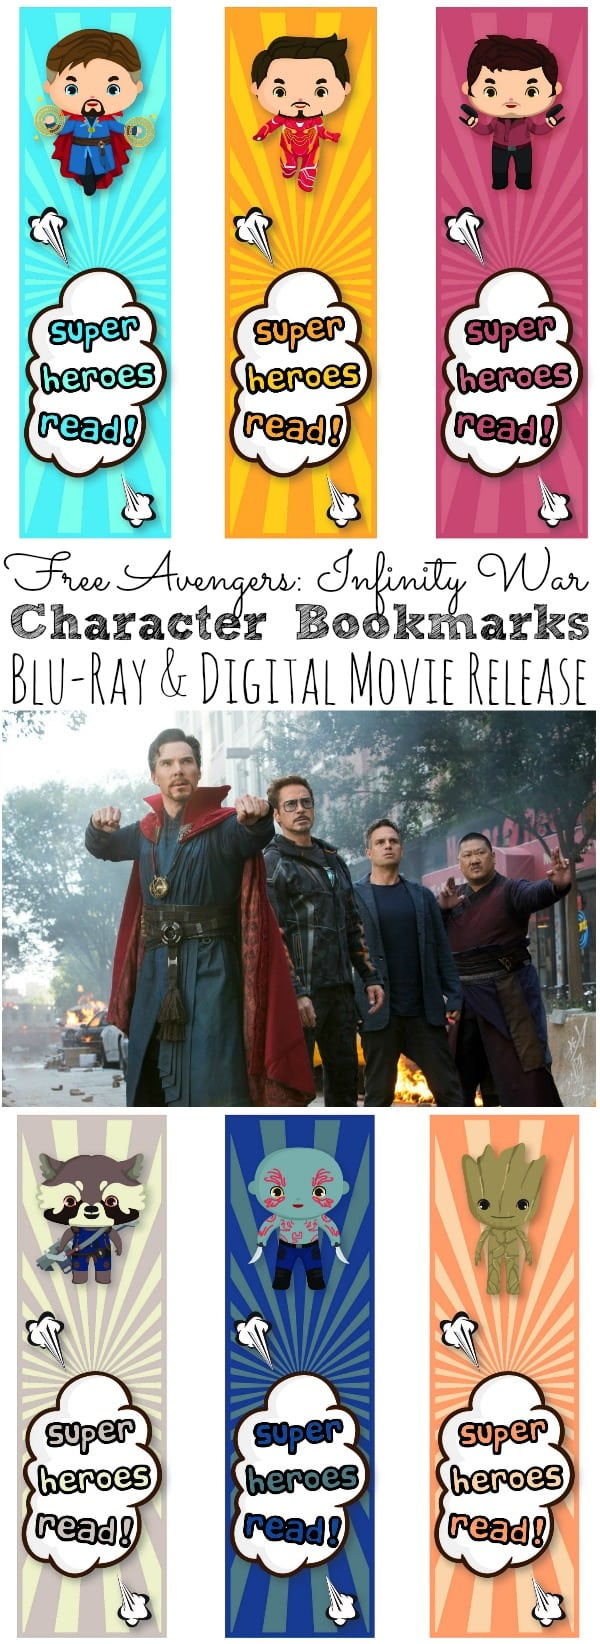 Free Avengers Infinity War Bookmarks